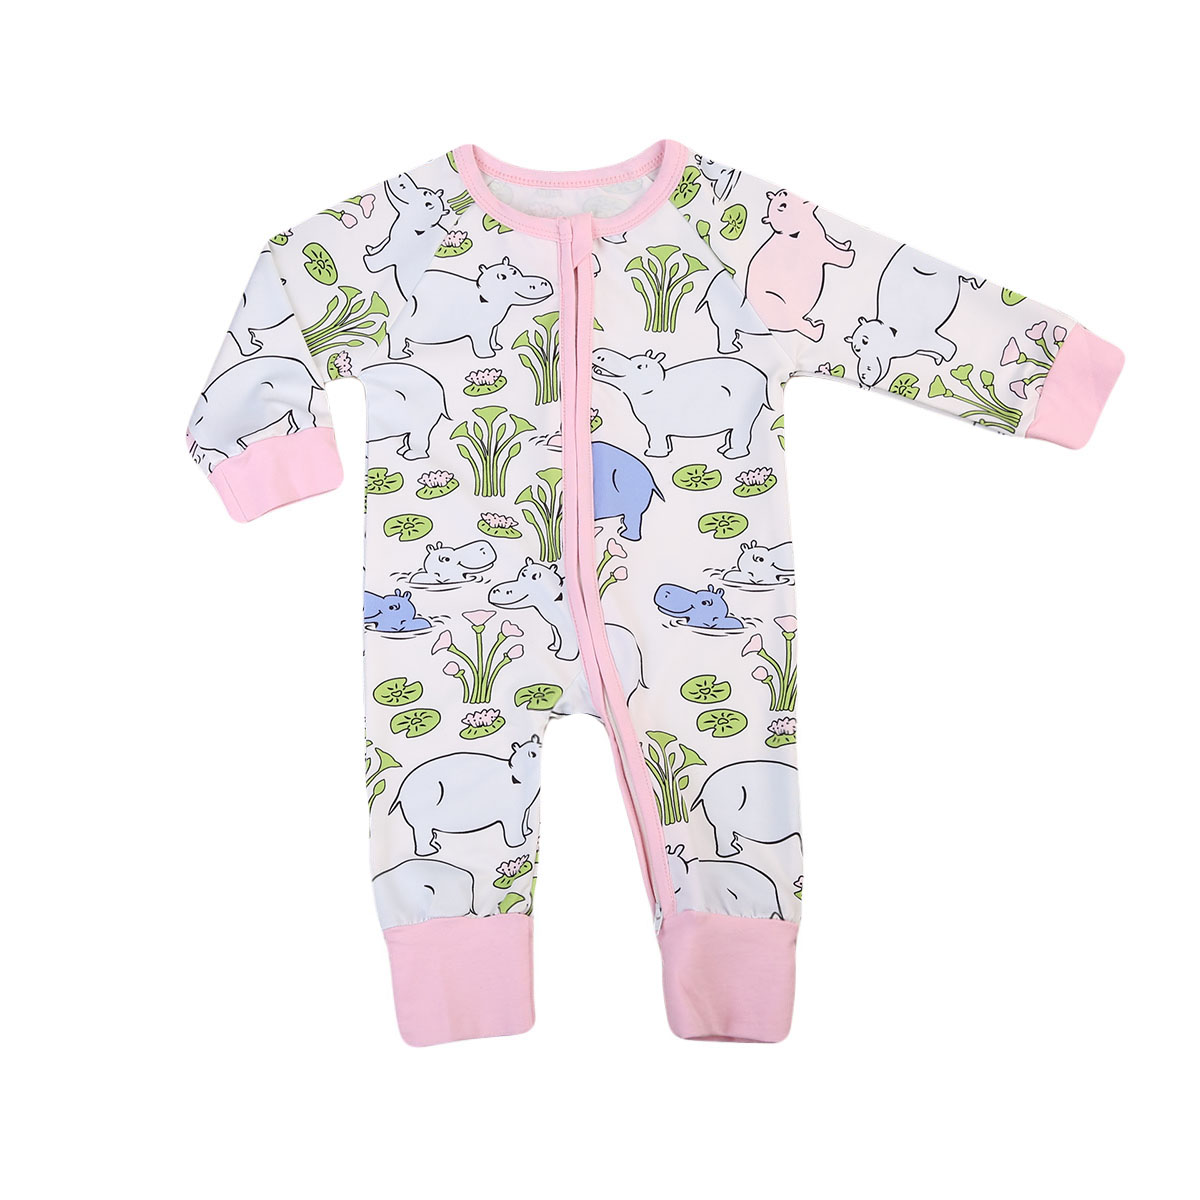 Newborn Infant Baby Toddler Boys Girl Kid Cotton Romper Zipper Jumpsuit Long Sleeve Clothes Outfit 0-24M